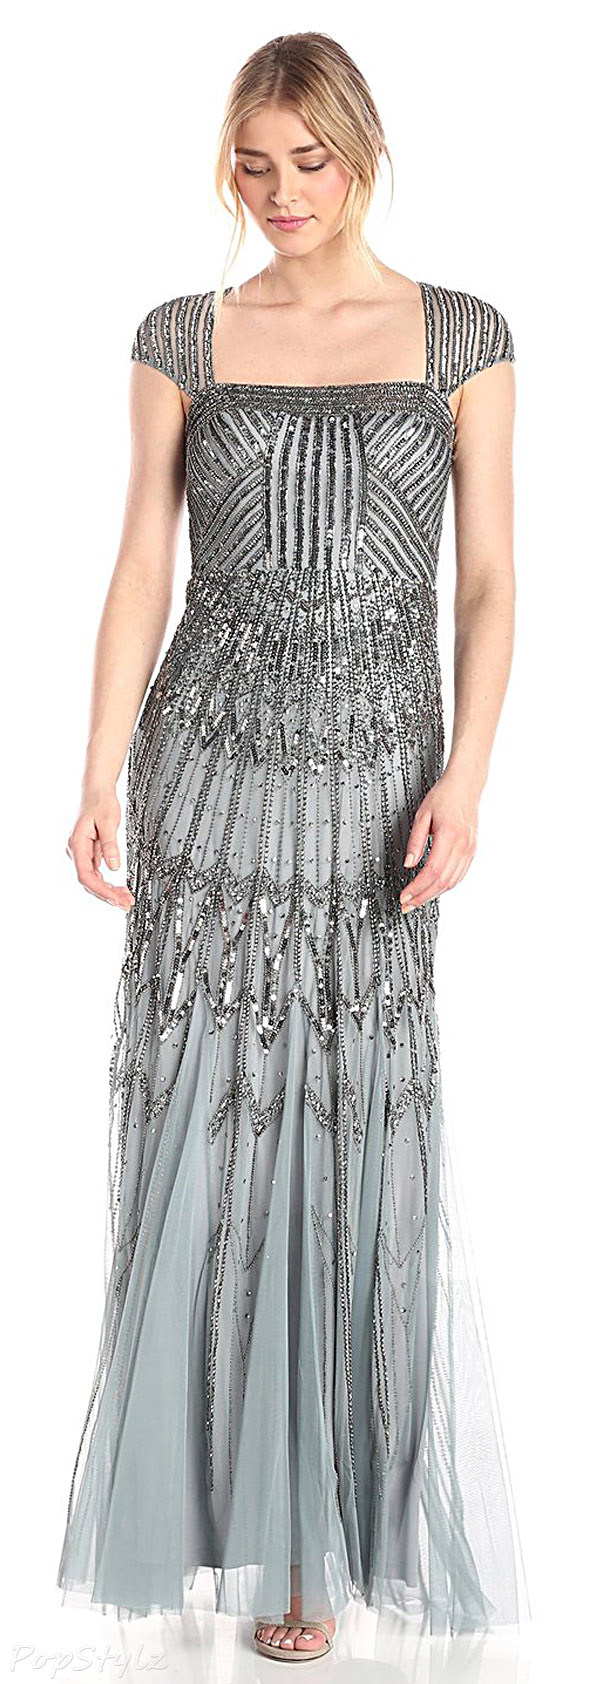 Adrianna Papell Long Beaded Dress with Cap Sleeves